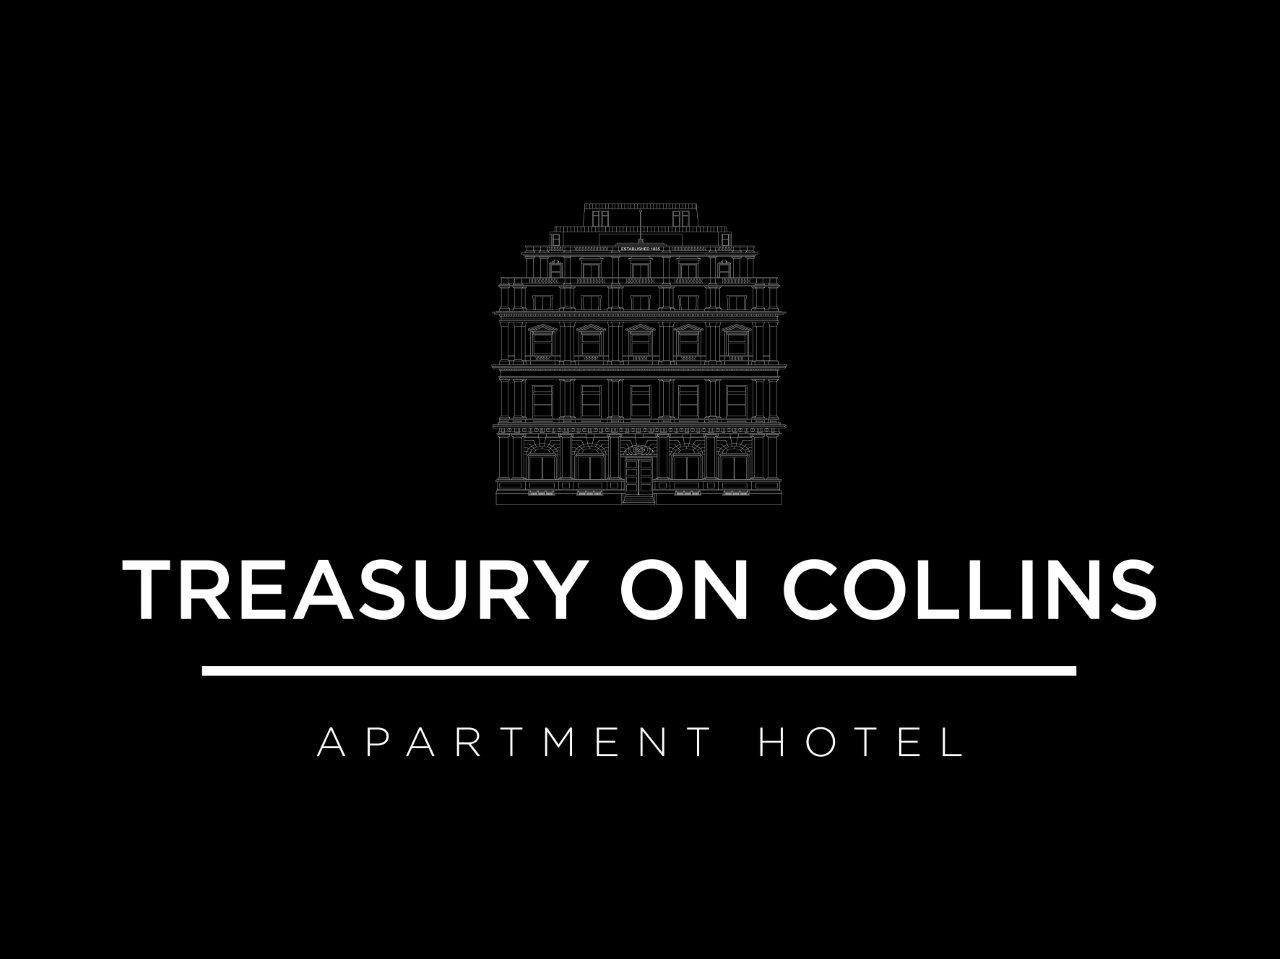 Treasury on Collins